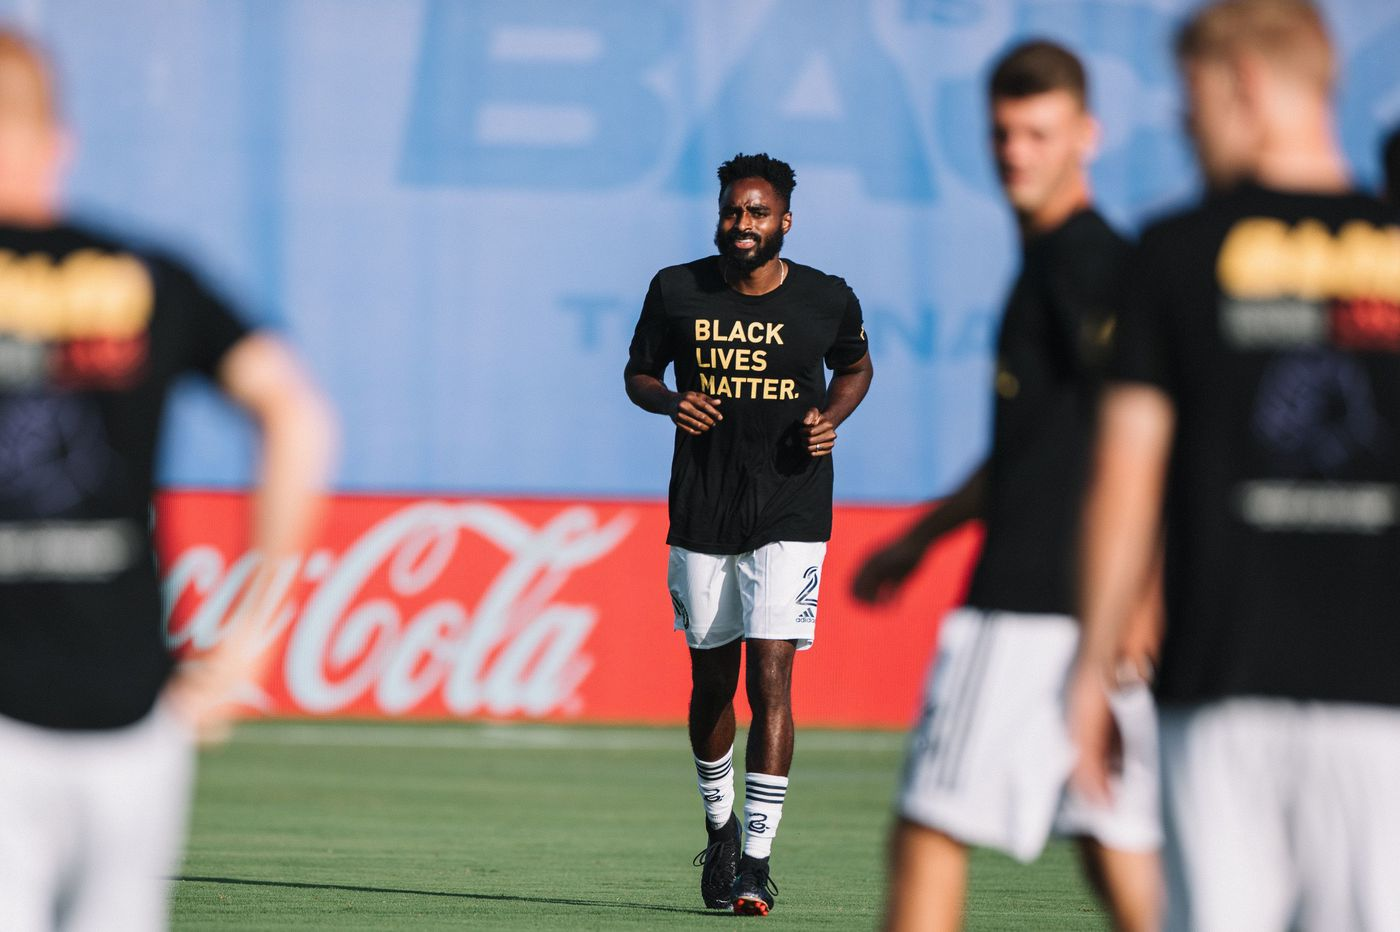 Union's Warren Creavalle salutes striking MLS players as Real Salt Lake owner lashes out at them